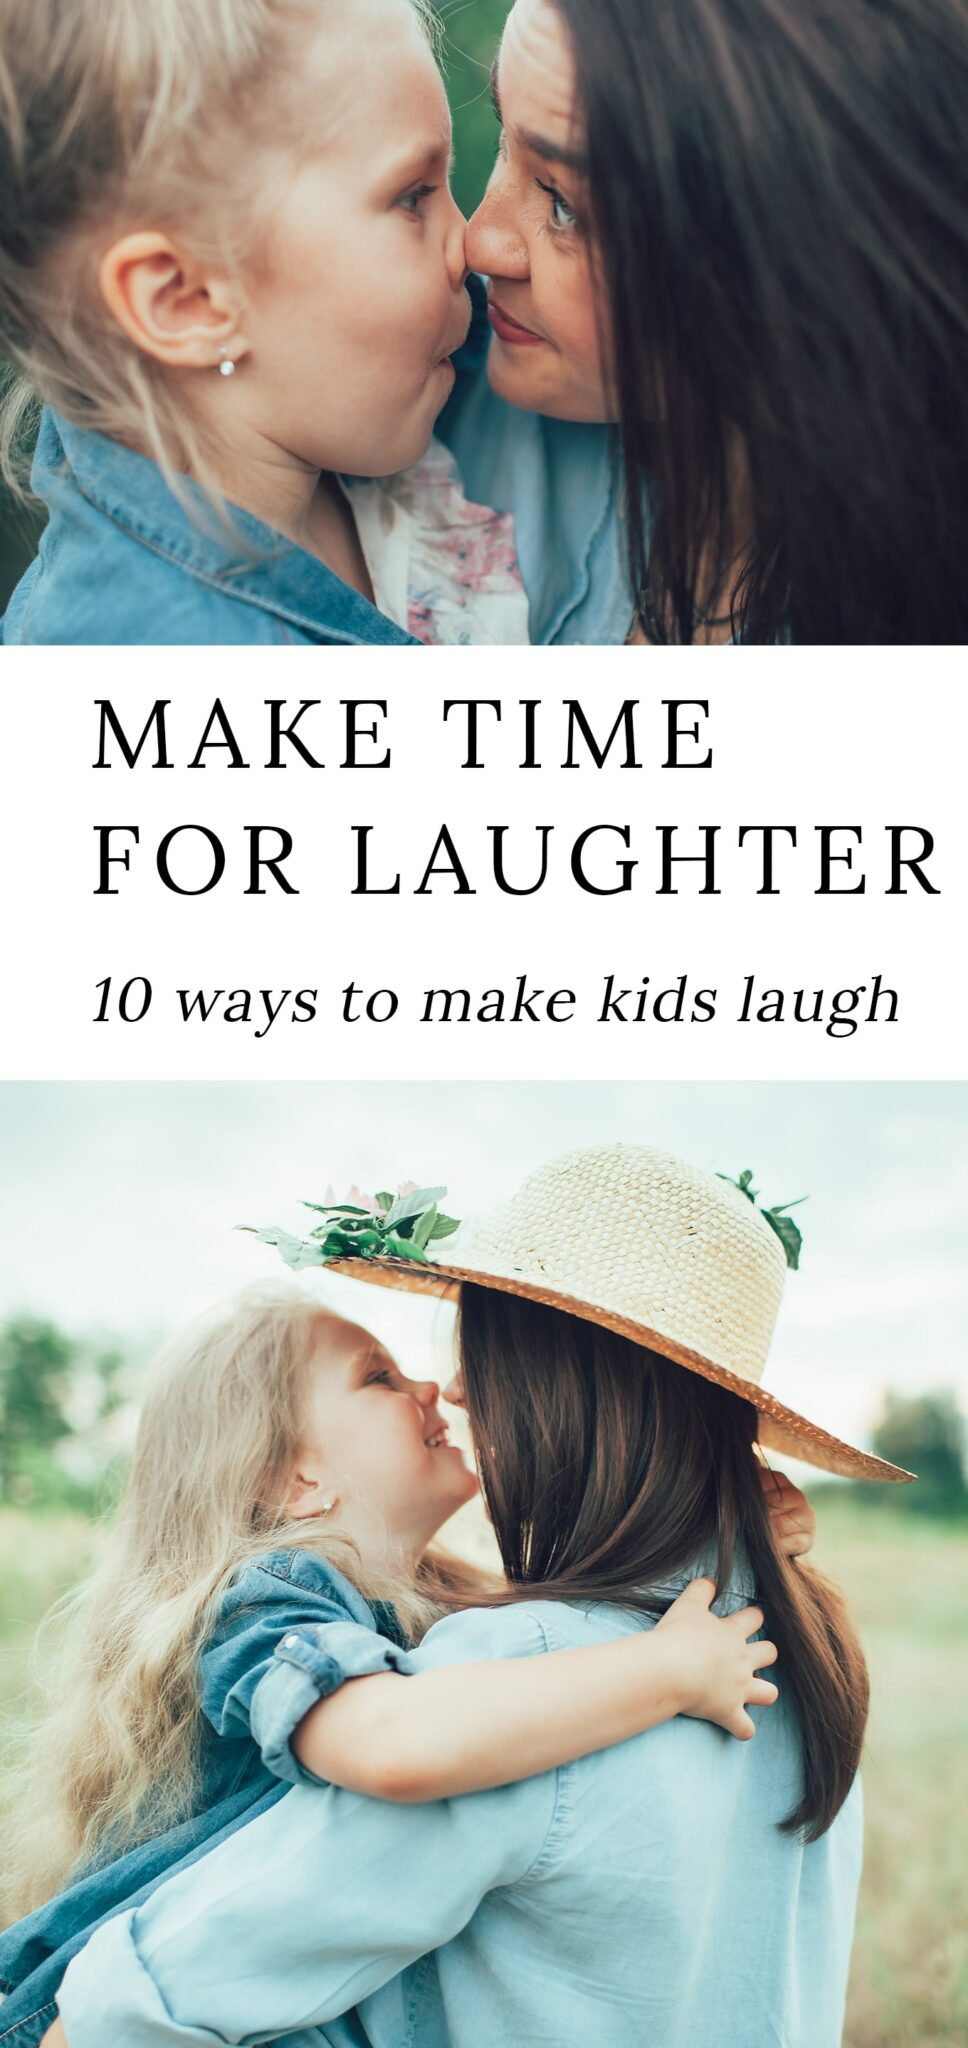 It's a scientific fact that laughter is the best medicine. In this post, explore 10 heartwarming ways to make kids laugh and learn why daily laughter is important for health, connection, and development. #parenting #kids #motherhood via @firefliesandmudpies